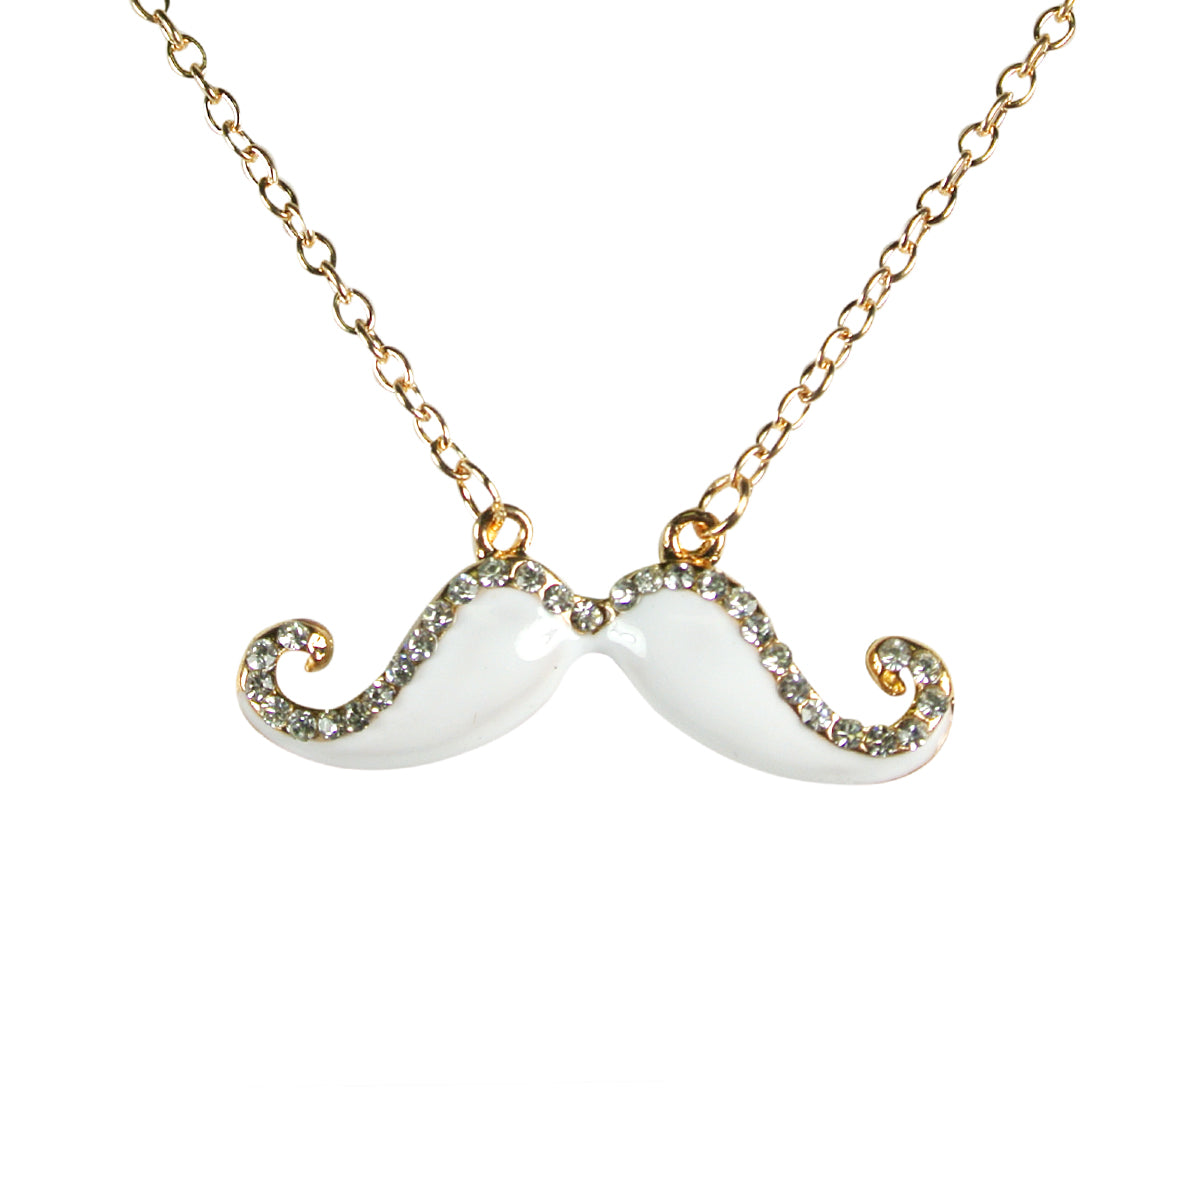 White Handlebar Mustache Necklace with Crystals